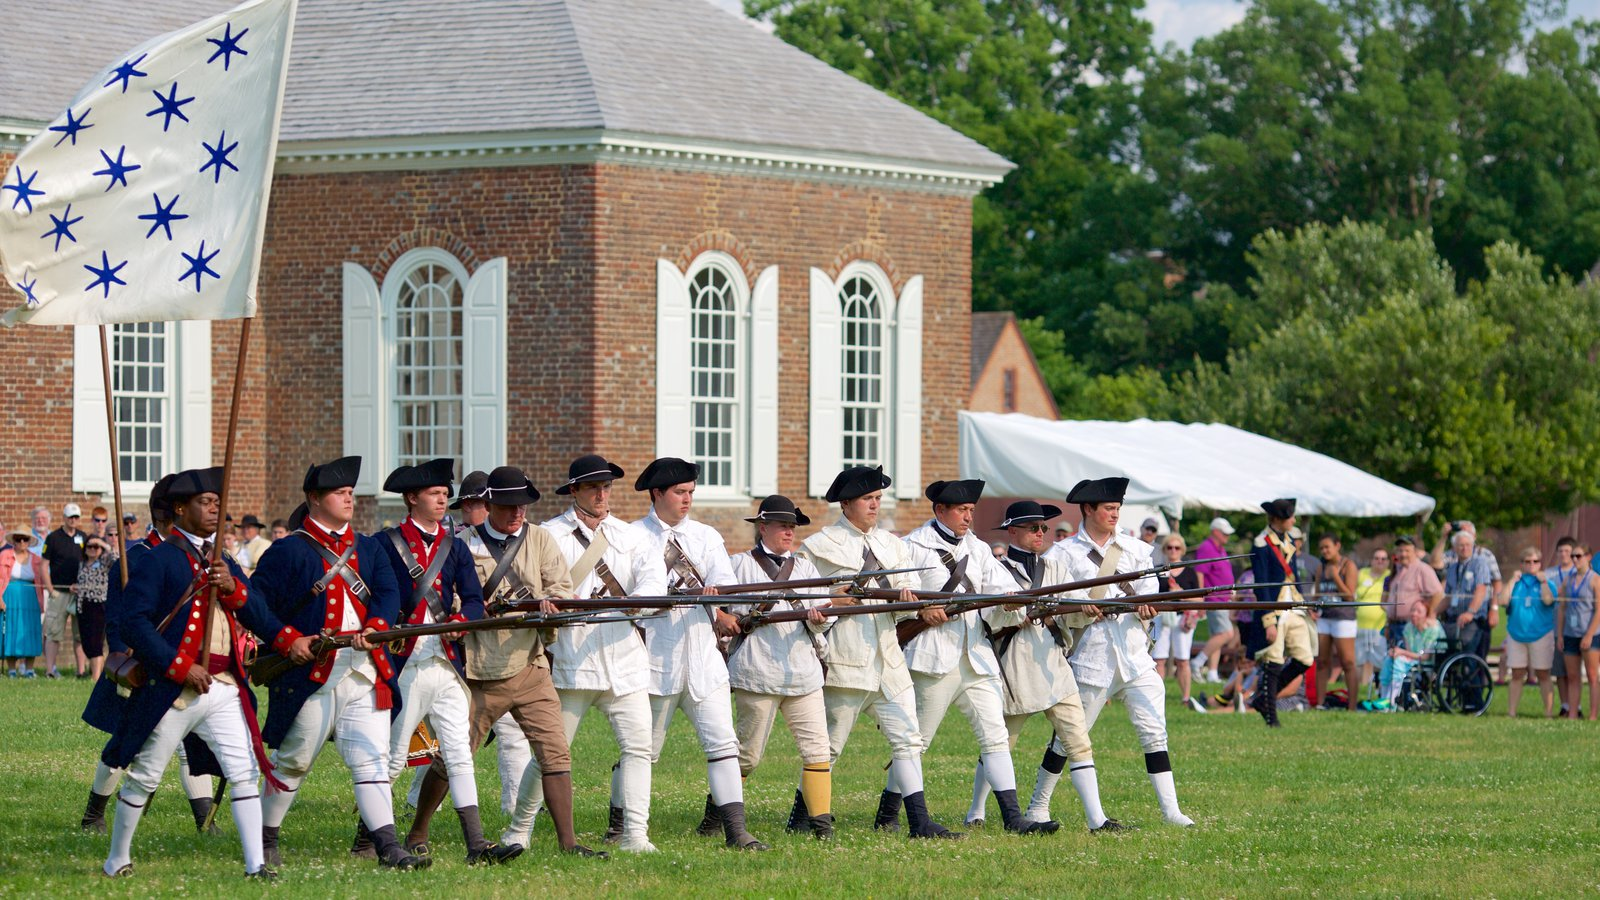 Colonial Williamsburg On a Budget | How We Did 3 Days/4 Nights For $200 & Colonial Williamsburg On a Budget | How We Did 3 Days/4 Nights For ...